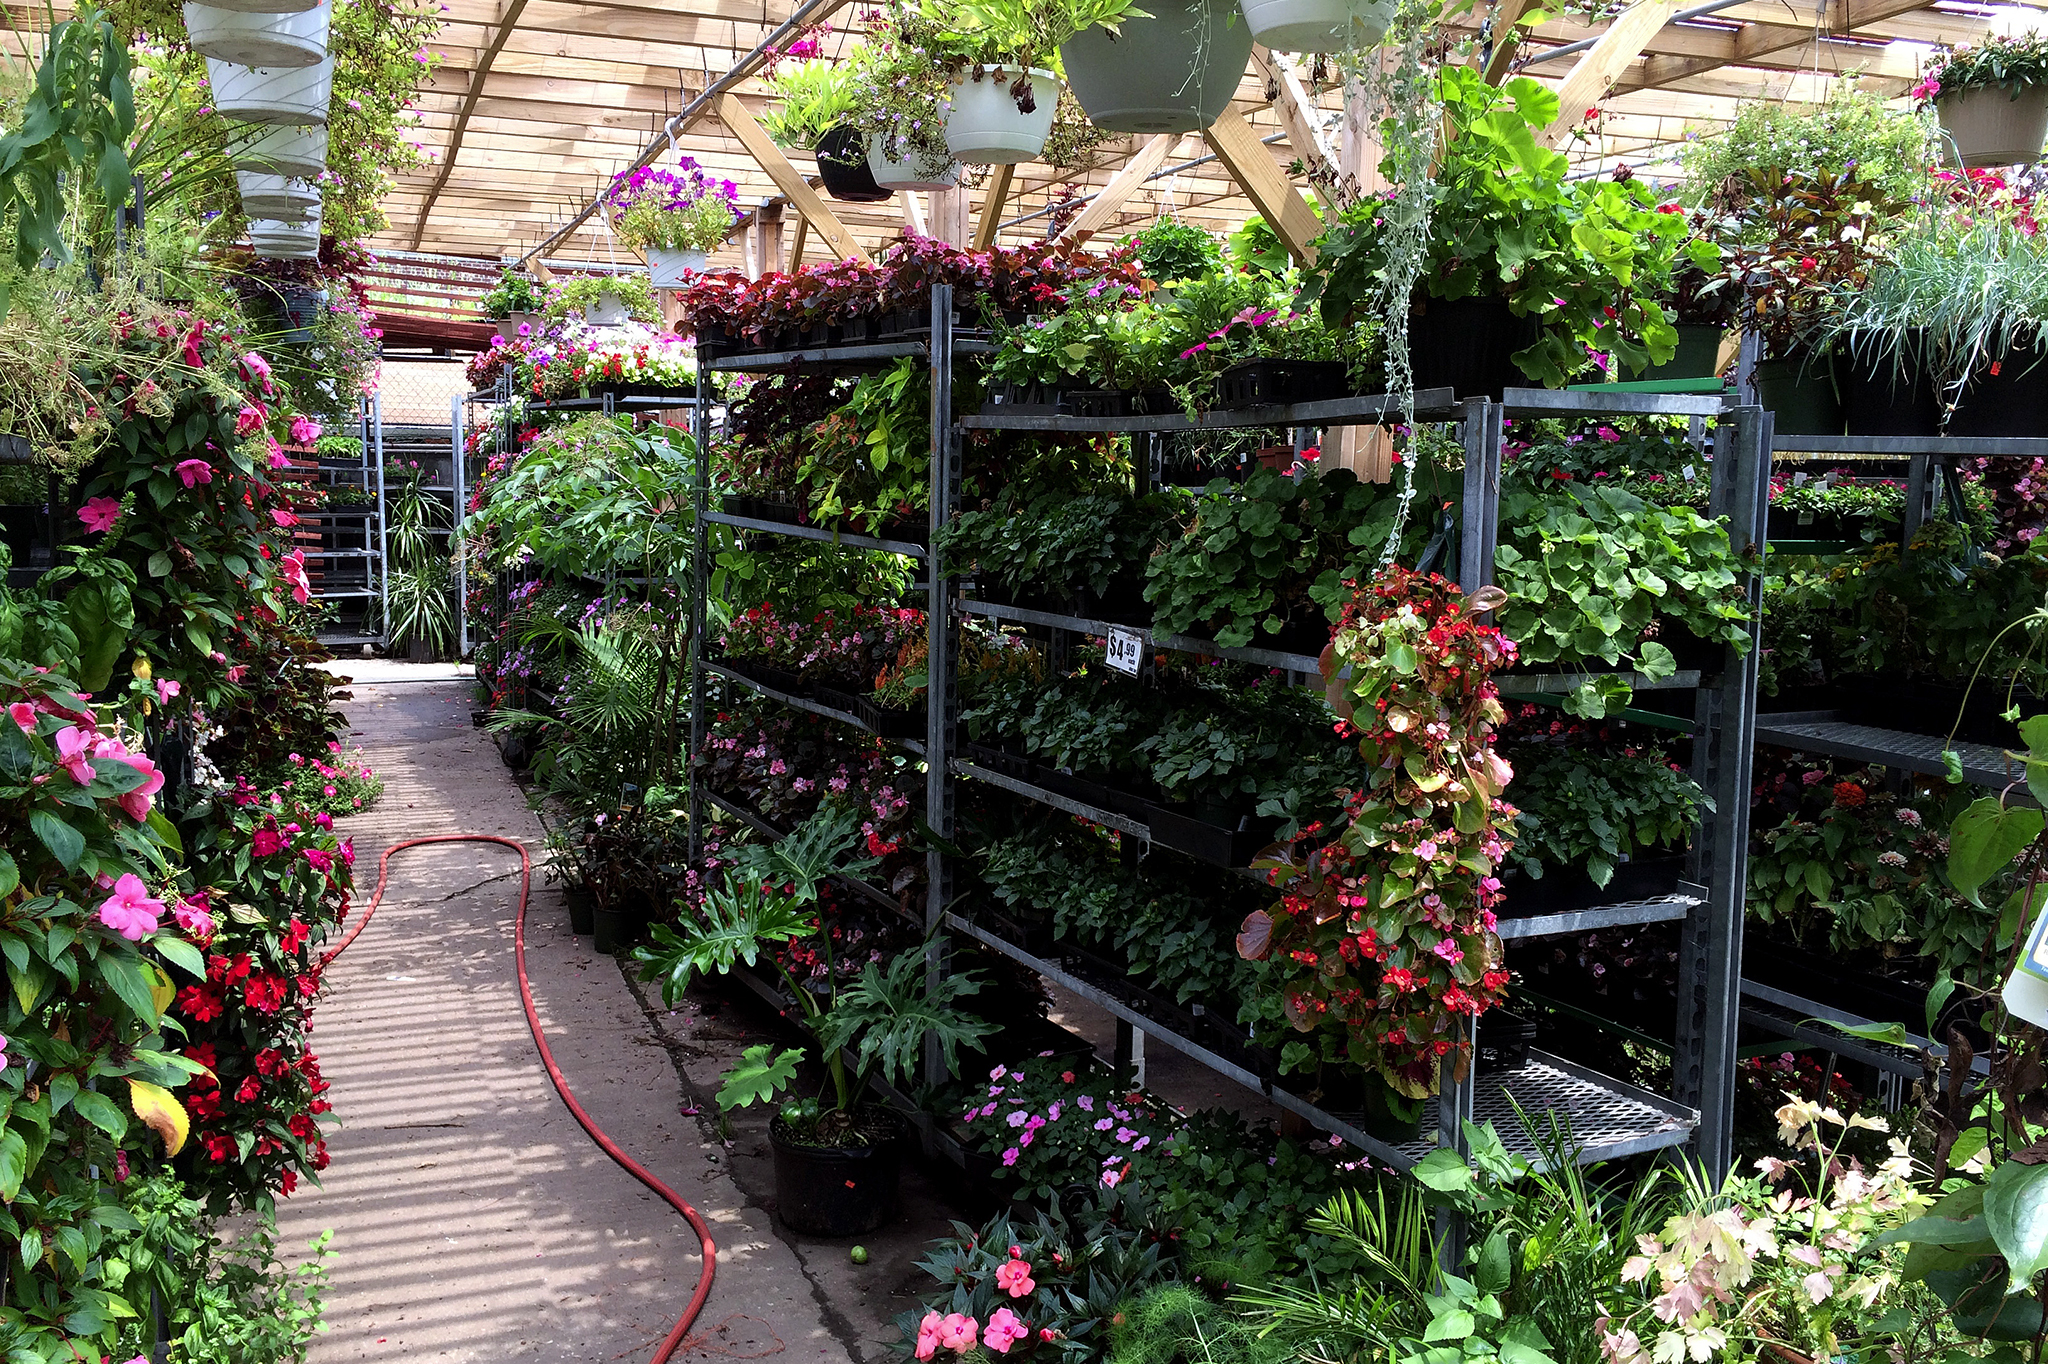 Landscaped Gardens Facility: Best Garden Store Options In NYC For Plants, Flowers